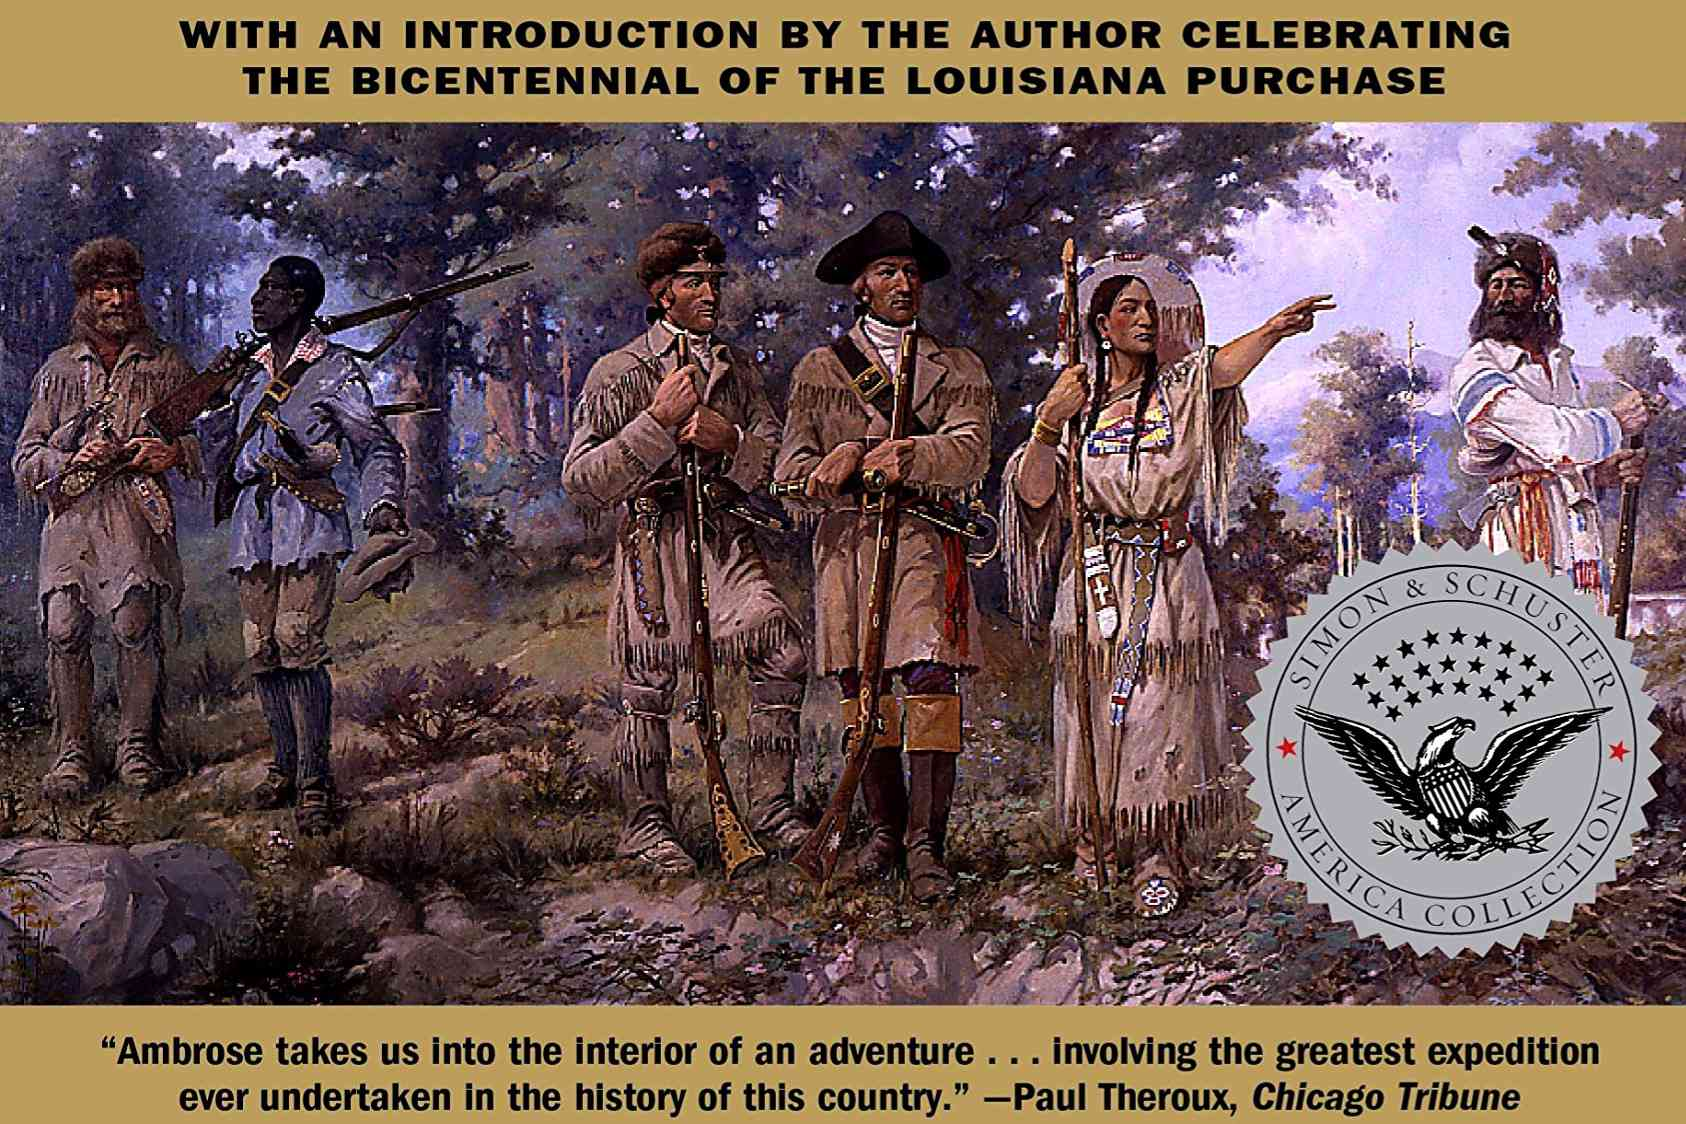 """The cover of """"Undaunted Courage"""" depicts Lewis, Clark, and their fellow explorers"""